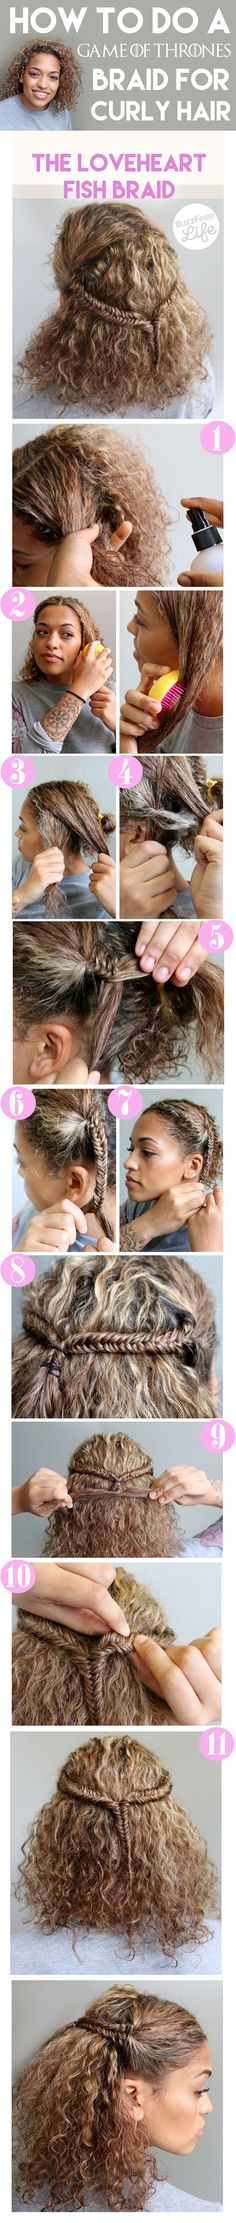 The One for Curly Hair: